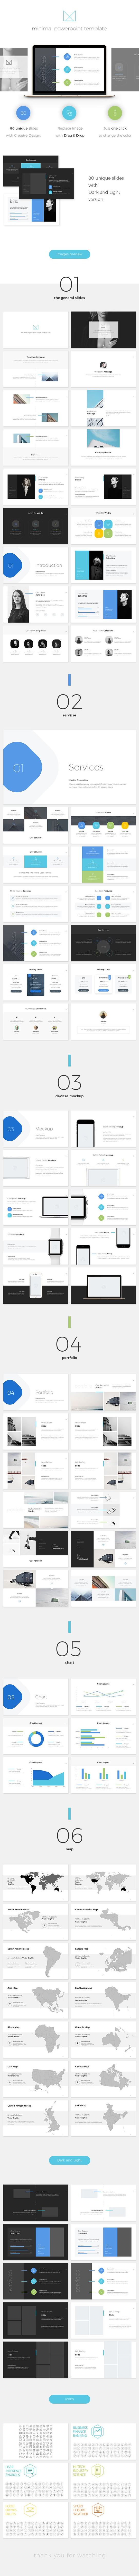 Minimal Powerpoint Template. Download here: http://graphicriver.net/item/minimal-powerpoint-template/16613900?ref=ksioks